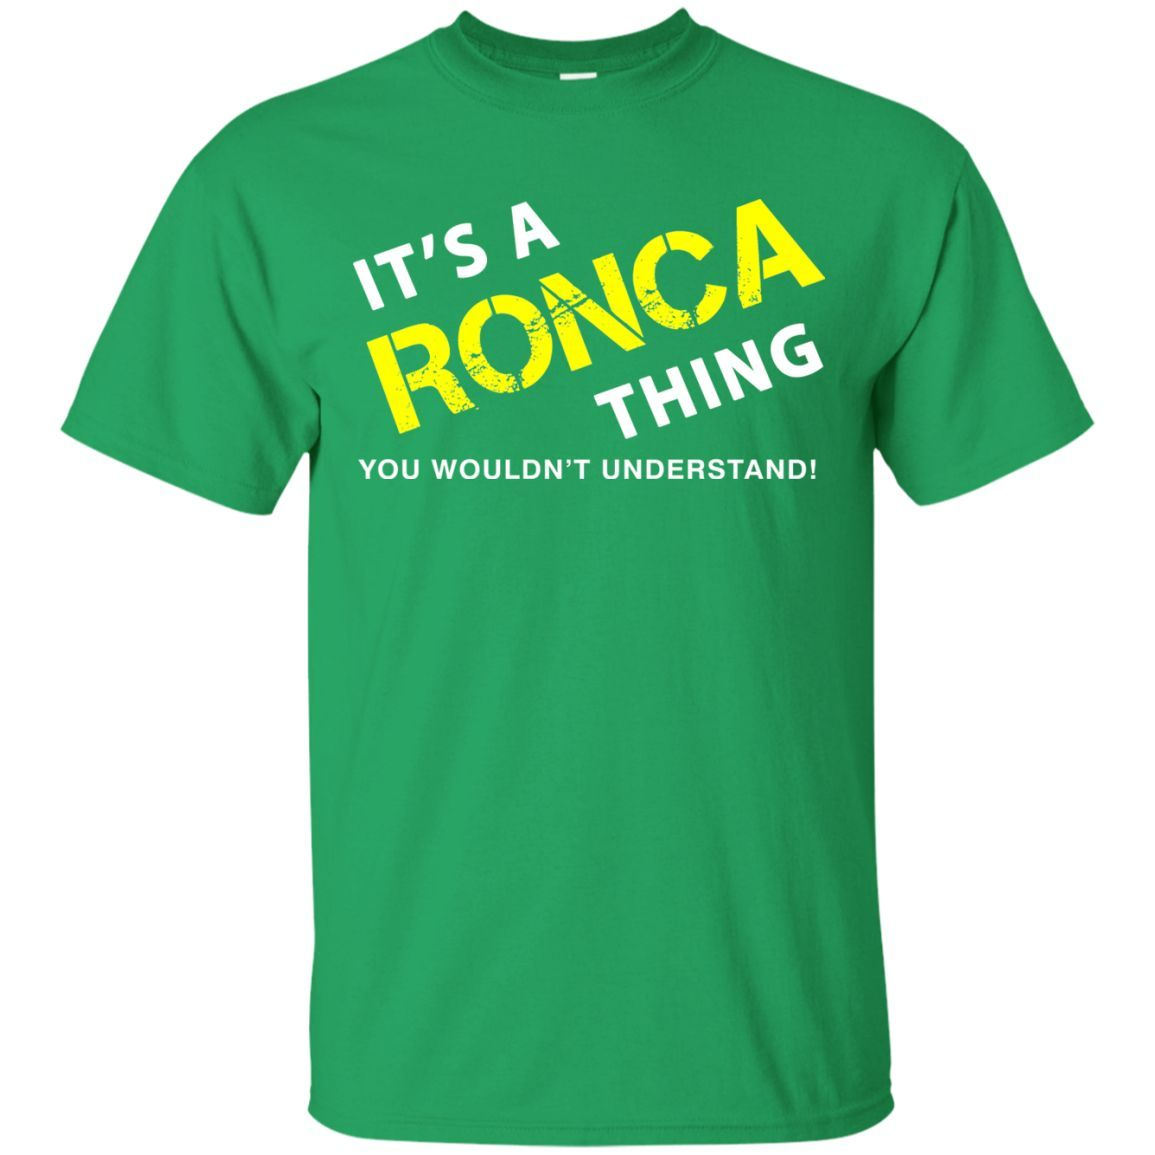 It's a RONCA Thing You Wouldn't Understand